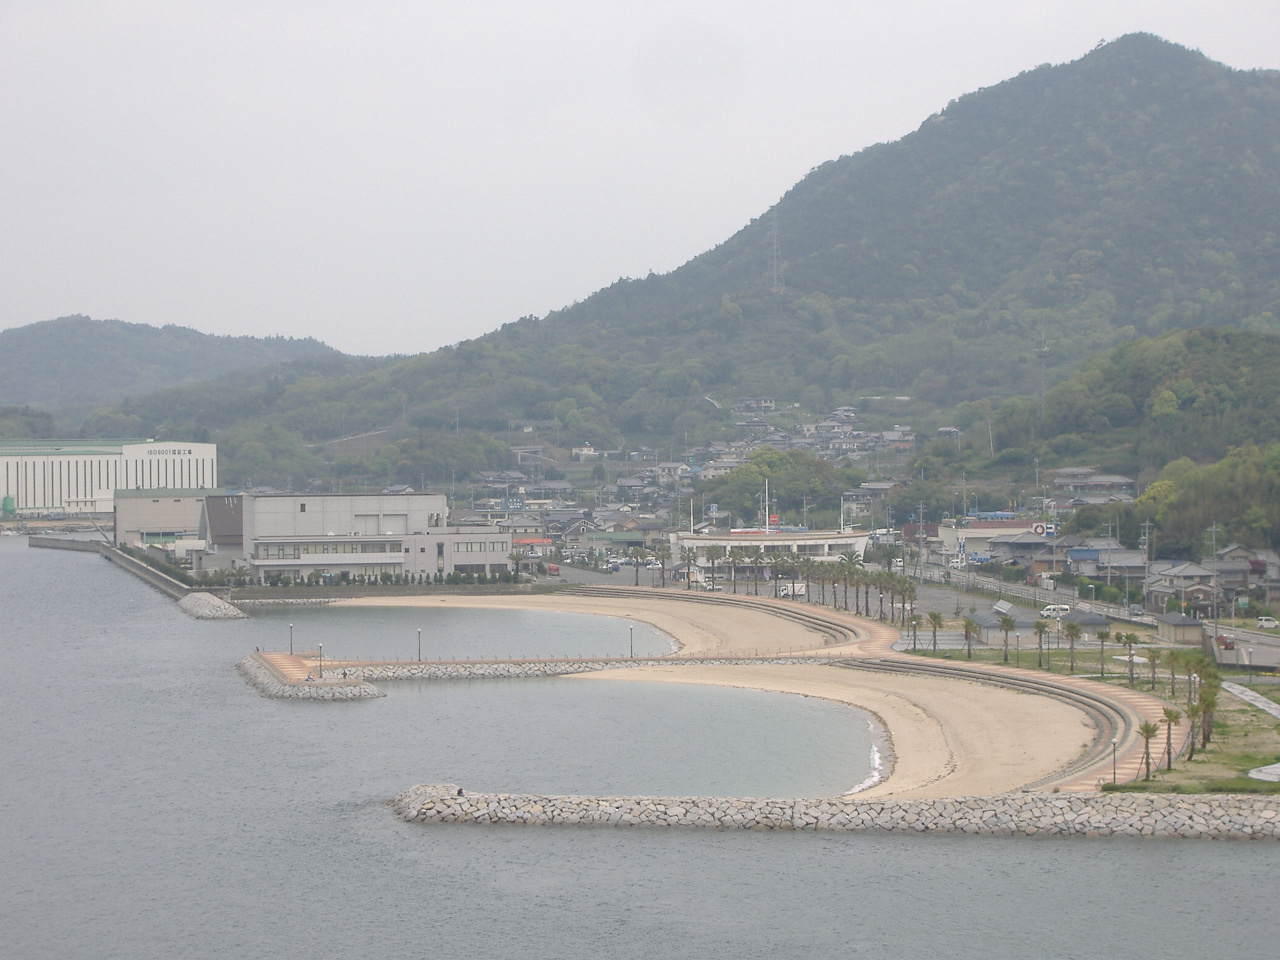 Hakata_S_C_Park-From_HakataBridge.jpg